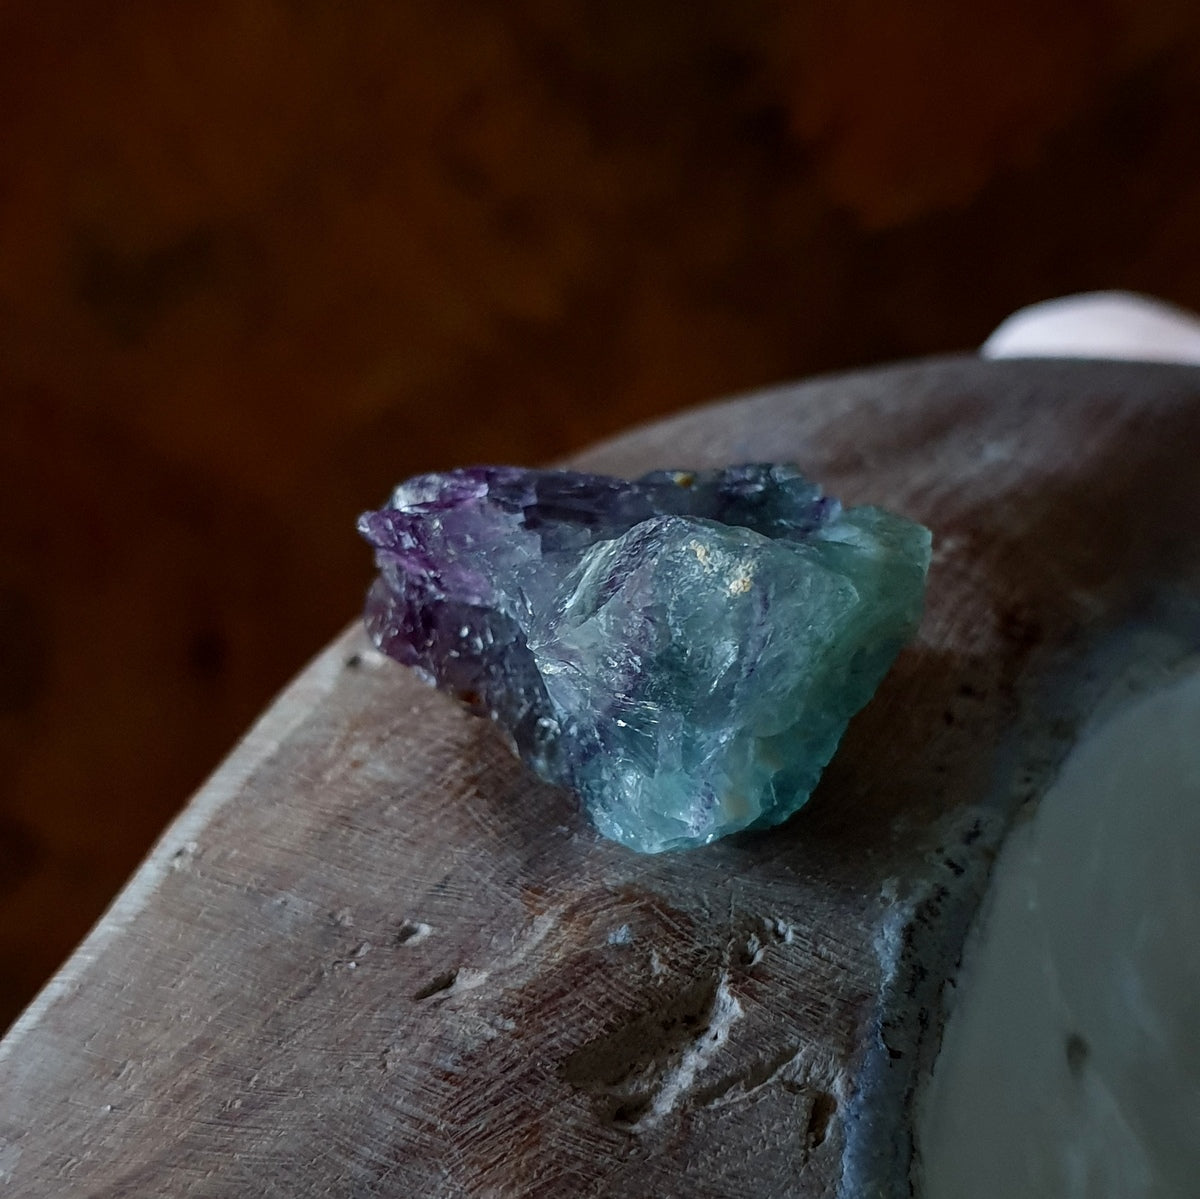 Namibian Fluorite Natural Rough Chunk - Shop Now at Illiom Crystals - Afterpay Available